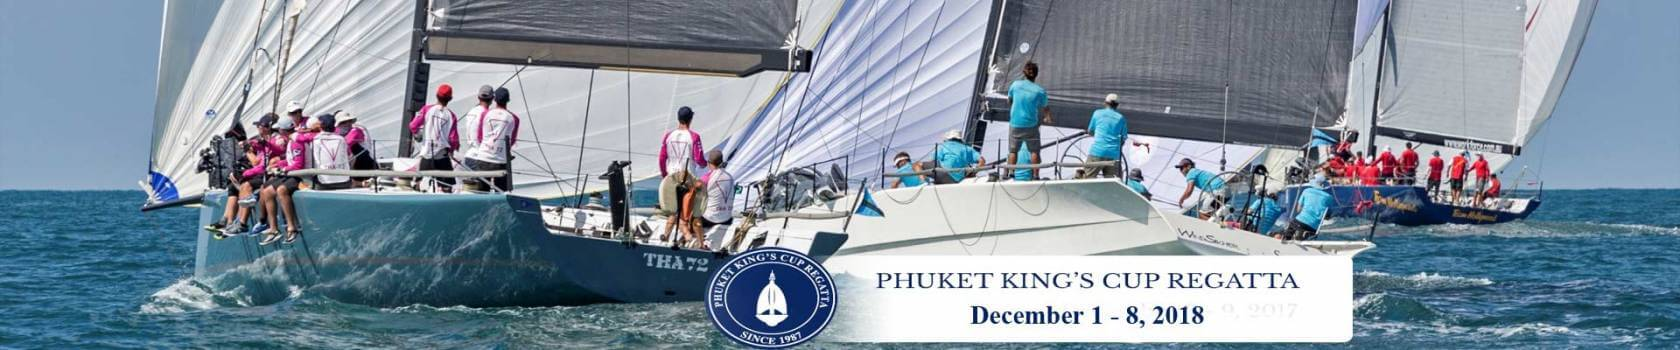 Phuket King's Cup Regatta 2018